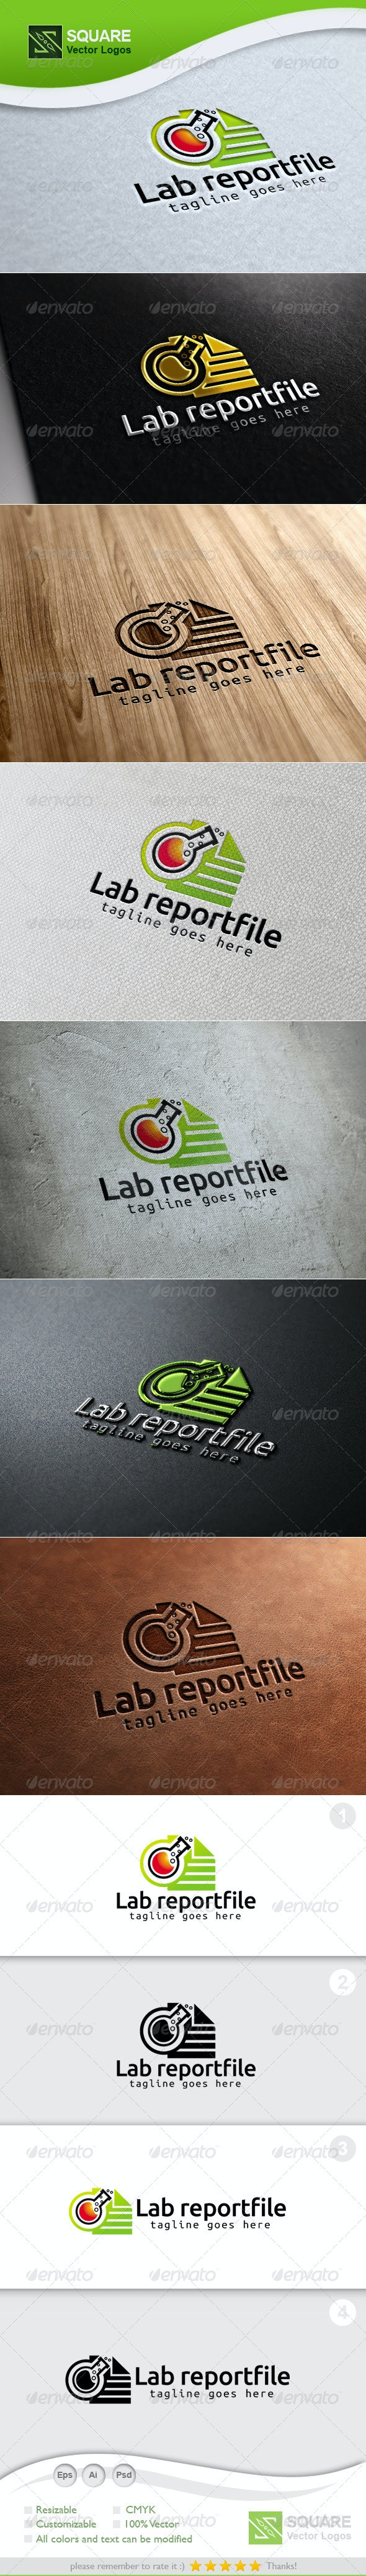 Test Tube, File Vector Logo Template - Objects Logo Templates